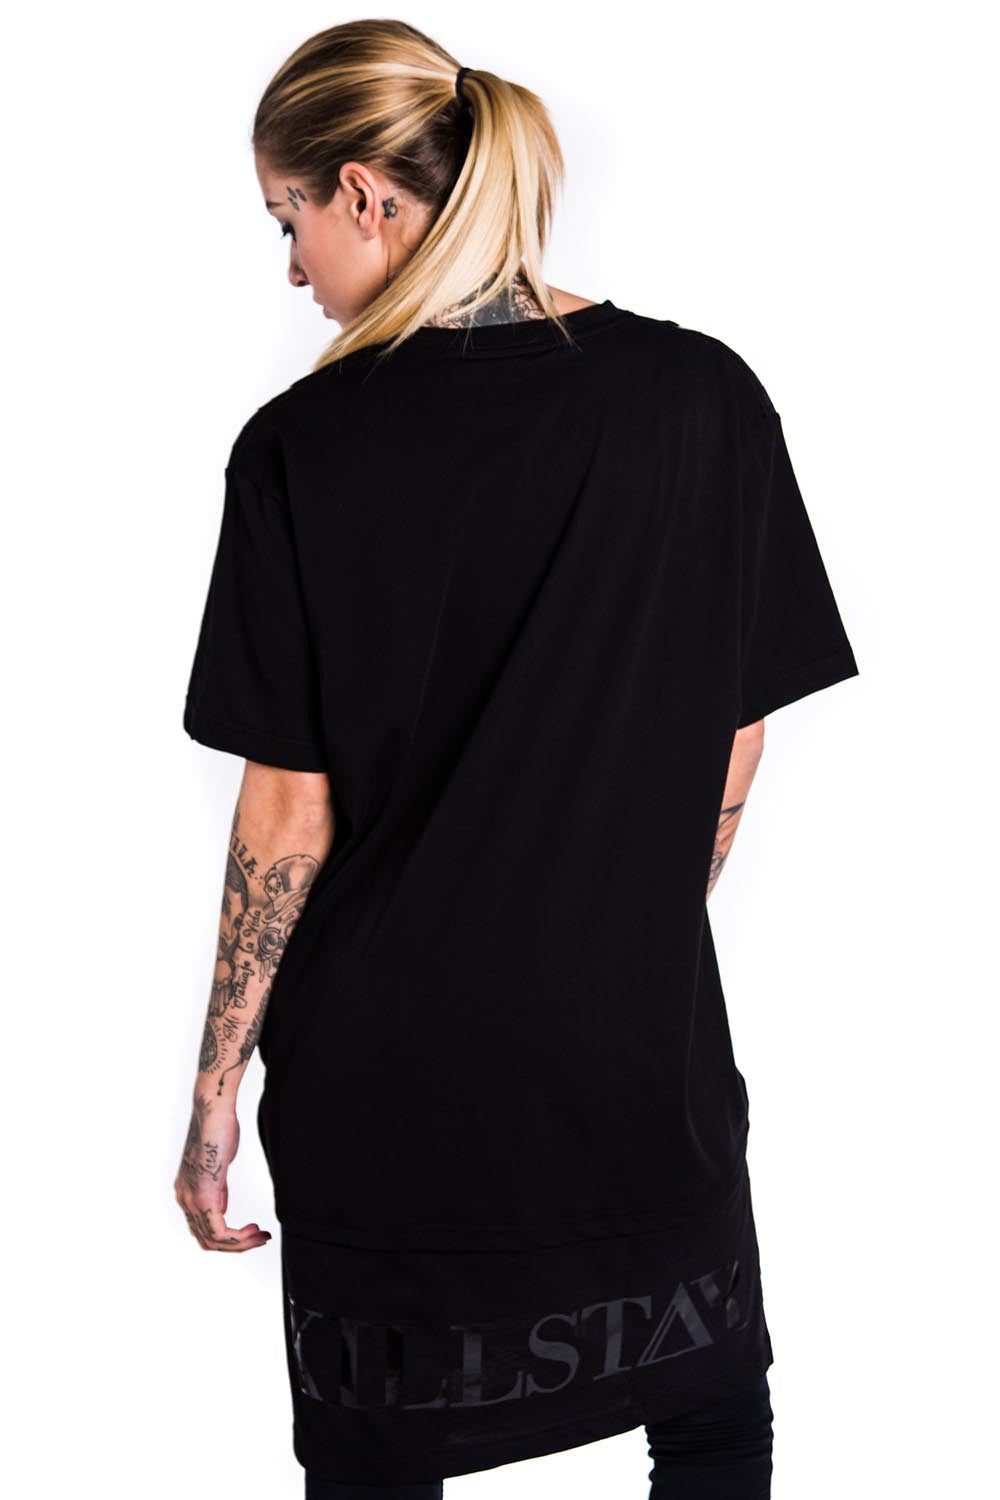 Vulture Gloss T-Shirt [XLONG]